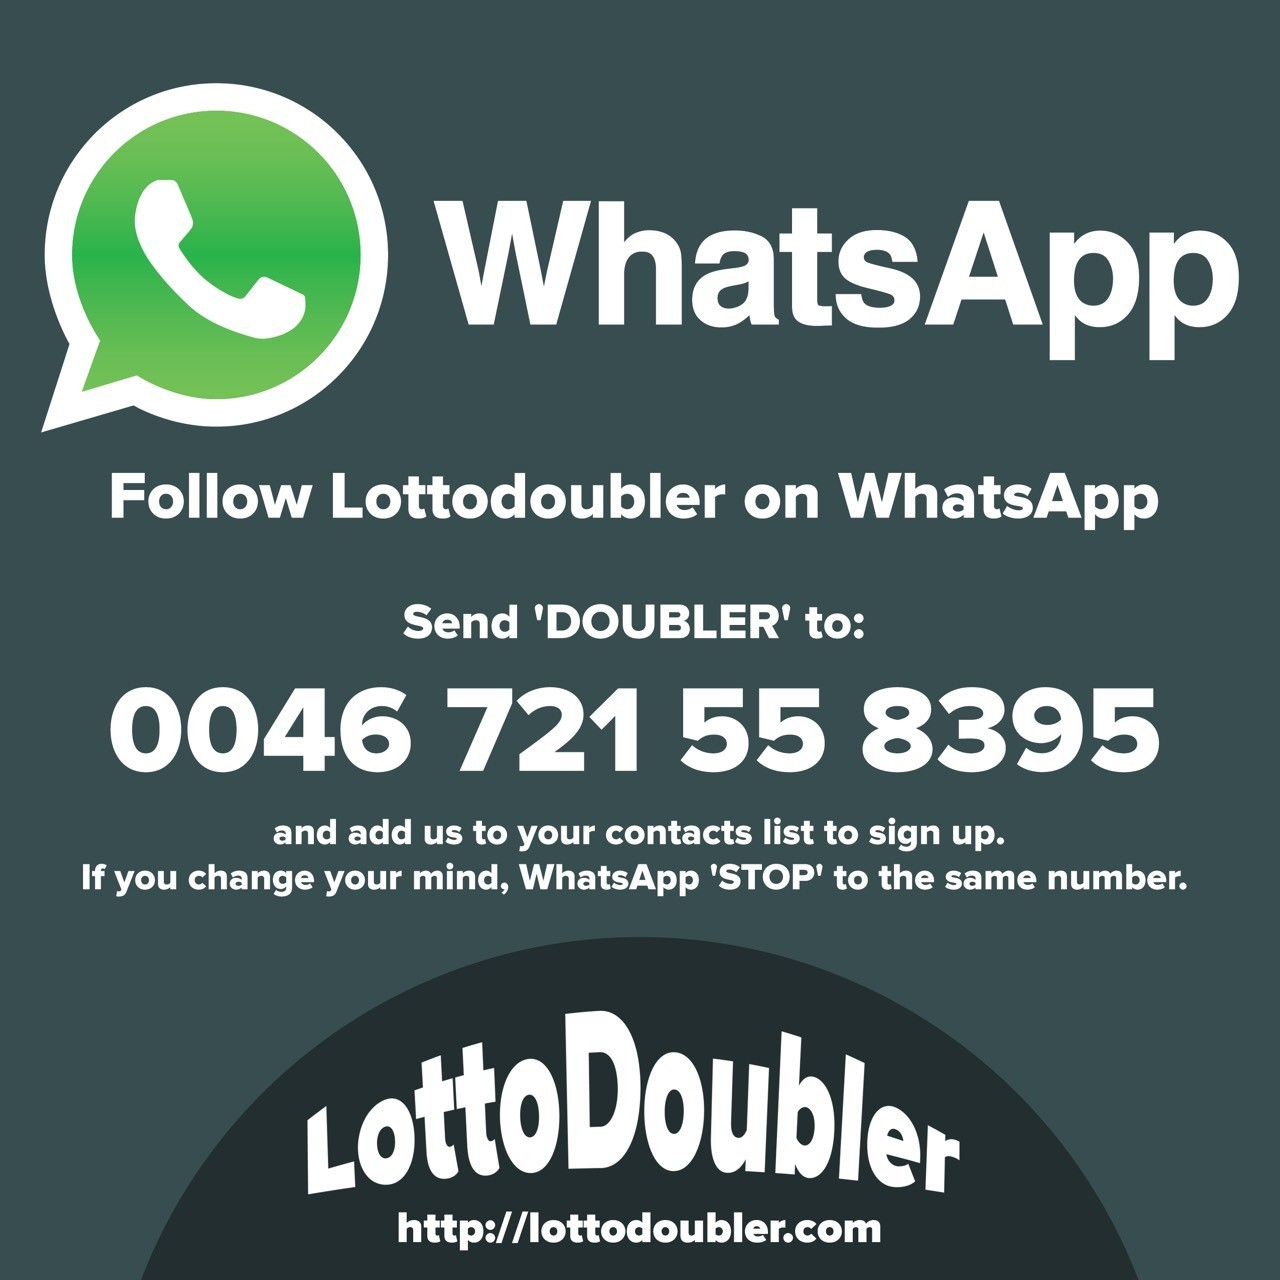 Follow Lottodoubler on WhatsApp. Send DOUBLER to 0046 721 55 8395 and add us to your contacts list to sign up. If you change your mind, WhatsApp STOP to the same number. -------- Lotto Doubler instant lottery Double Your Winnings! Win up to 10 times! It's all about the doubler! x2, x5, x10 Twitter #millionaire #scratch #scratchticket #scratchtickets #scratchgame #lotto #doubler #lottery #lottodoubler #lotterydoubler #jackpot #instantgames #instant #games #WhatsApp